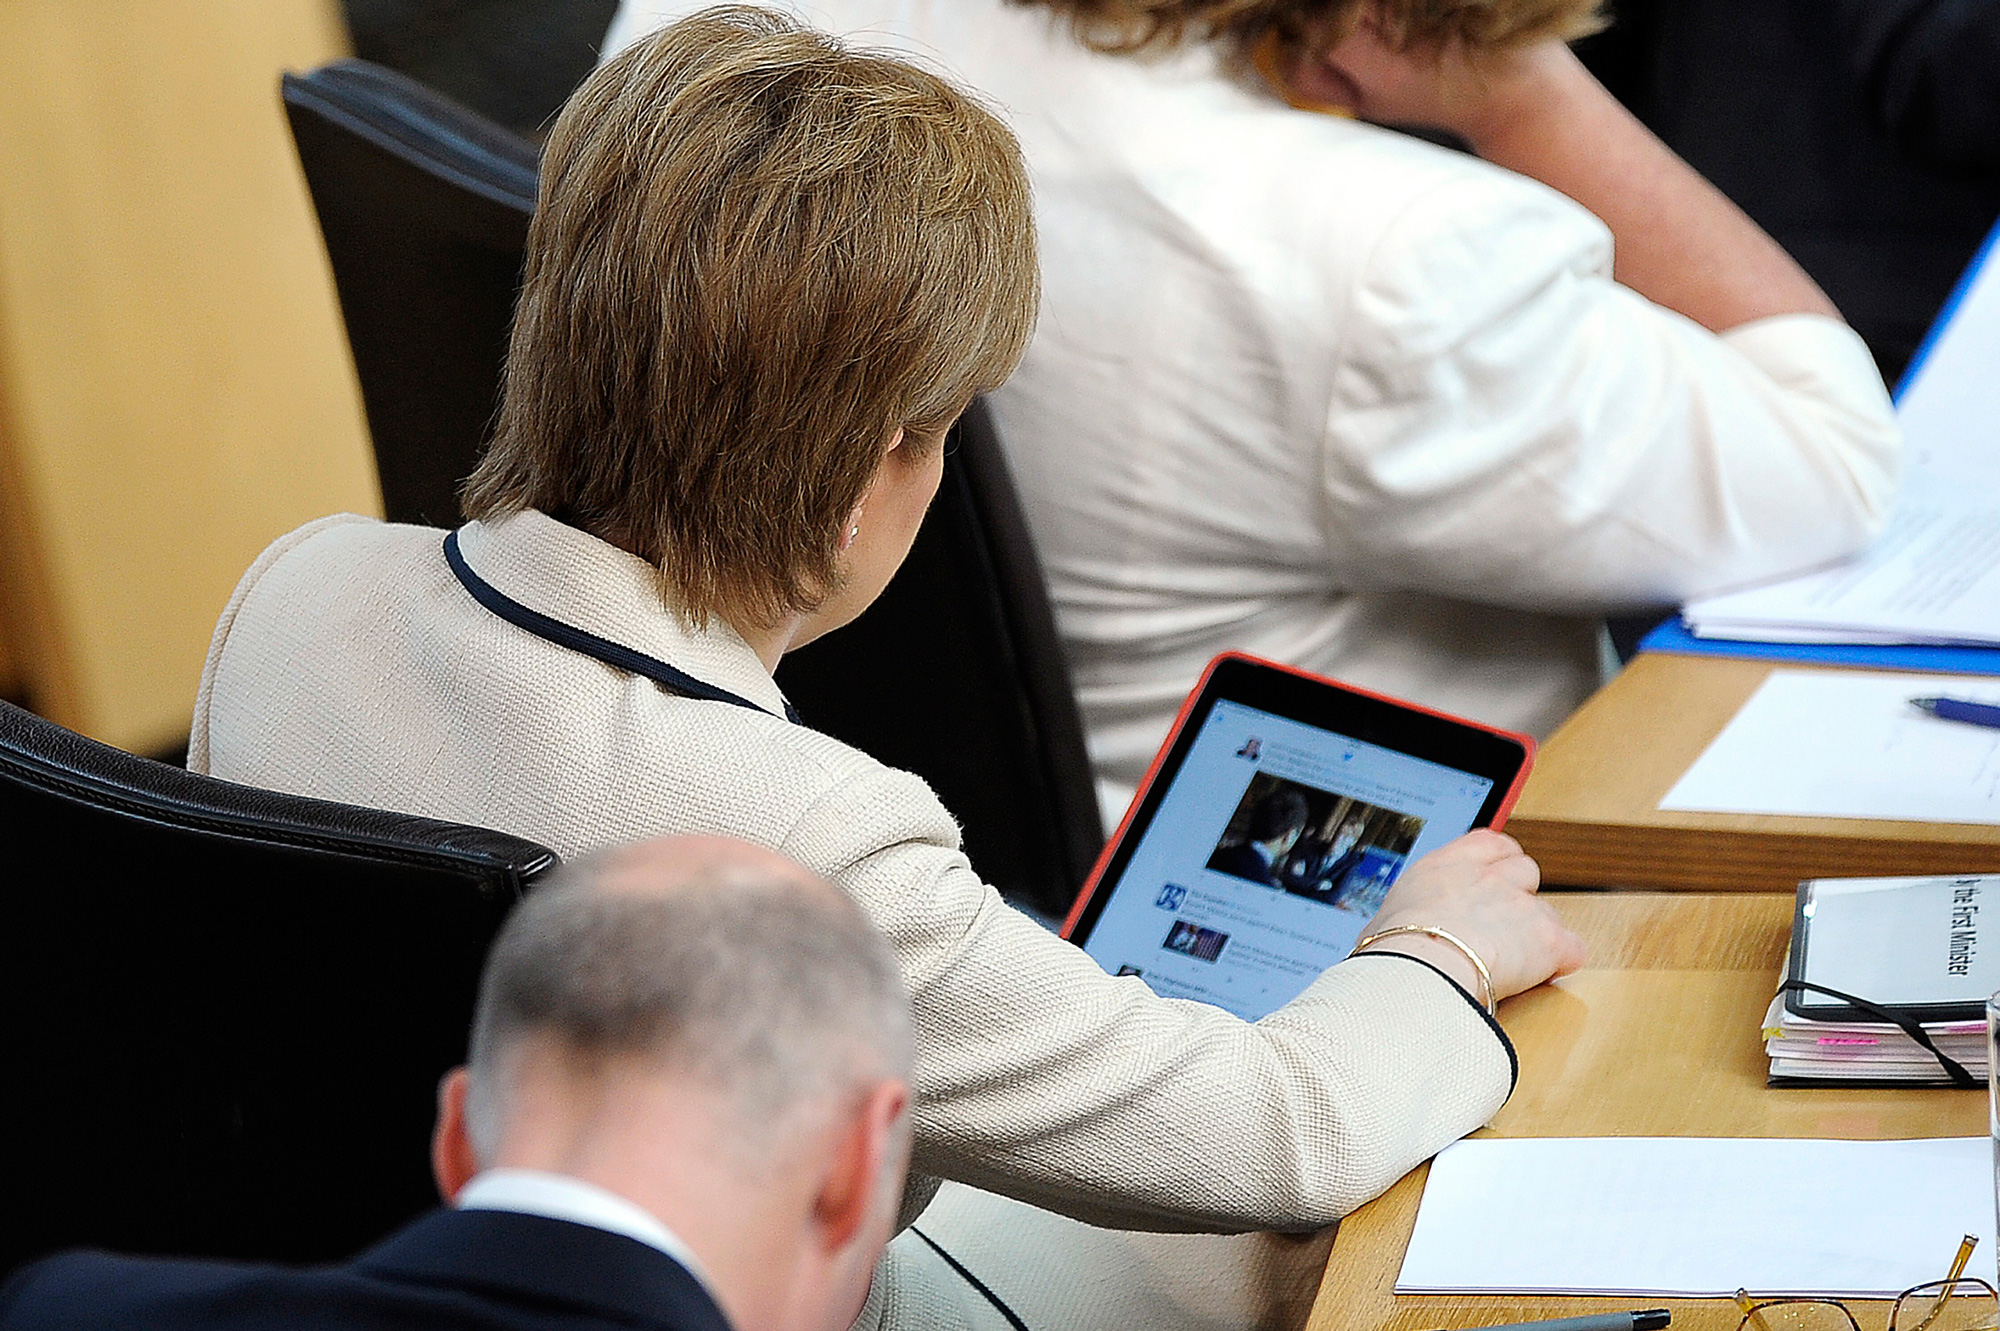 Nicola Sturgeon, the leader of the Scottish government, checks her Twitter feed during a June 28 parliamentary debate on the Brexit vote's implications for Scotland.